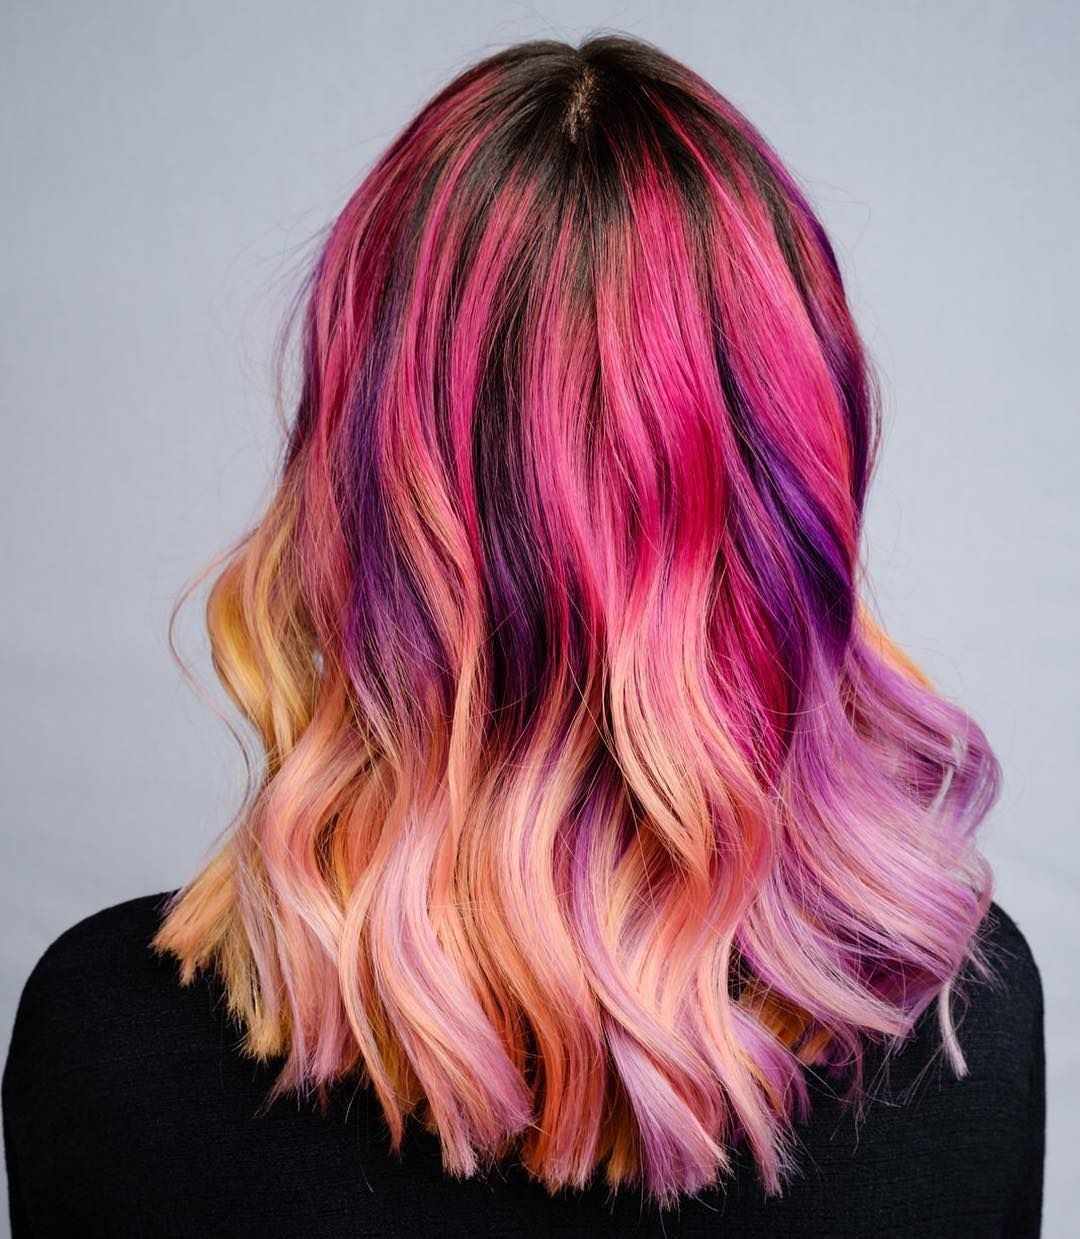 Pulp riot hair color pulpriothair u instagram photos and videos